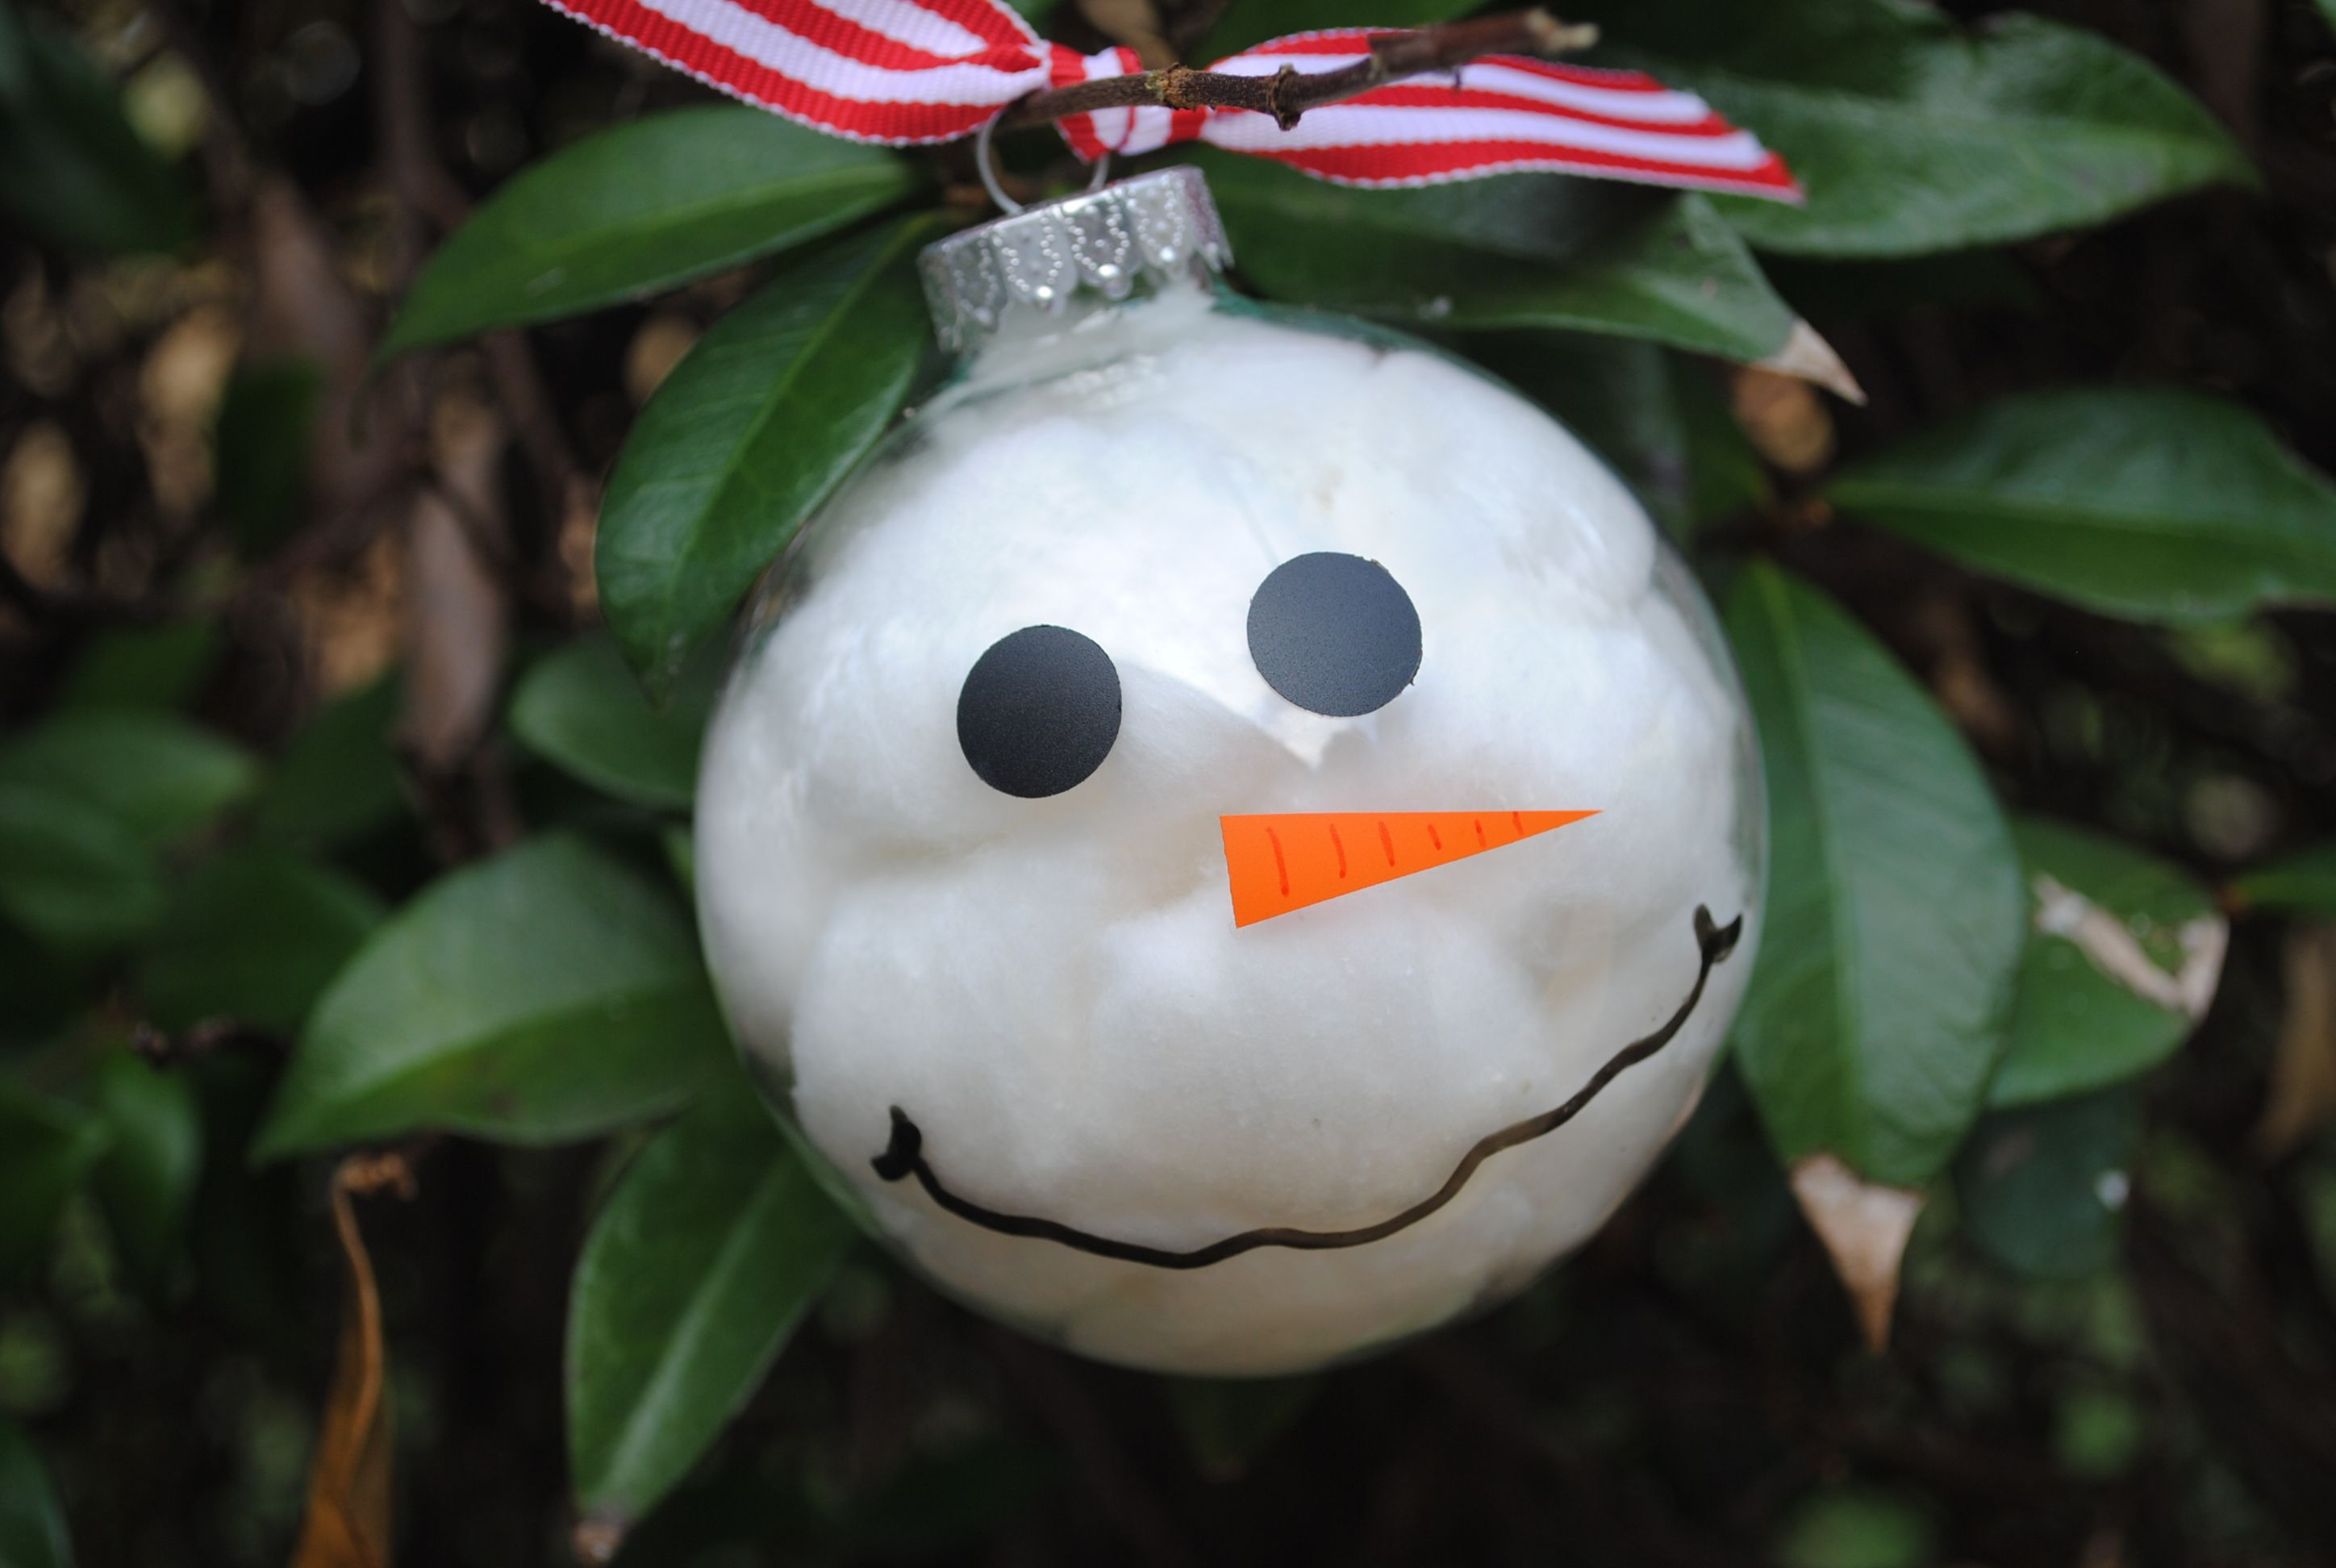 Diy Ornament Fill Clear Glass Ball With Cotton Balls Used Vinyl For Nose And Kids Christmas Ornaments Christmas Ball Ornaments Diy Diy Christmas Ornaments